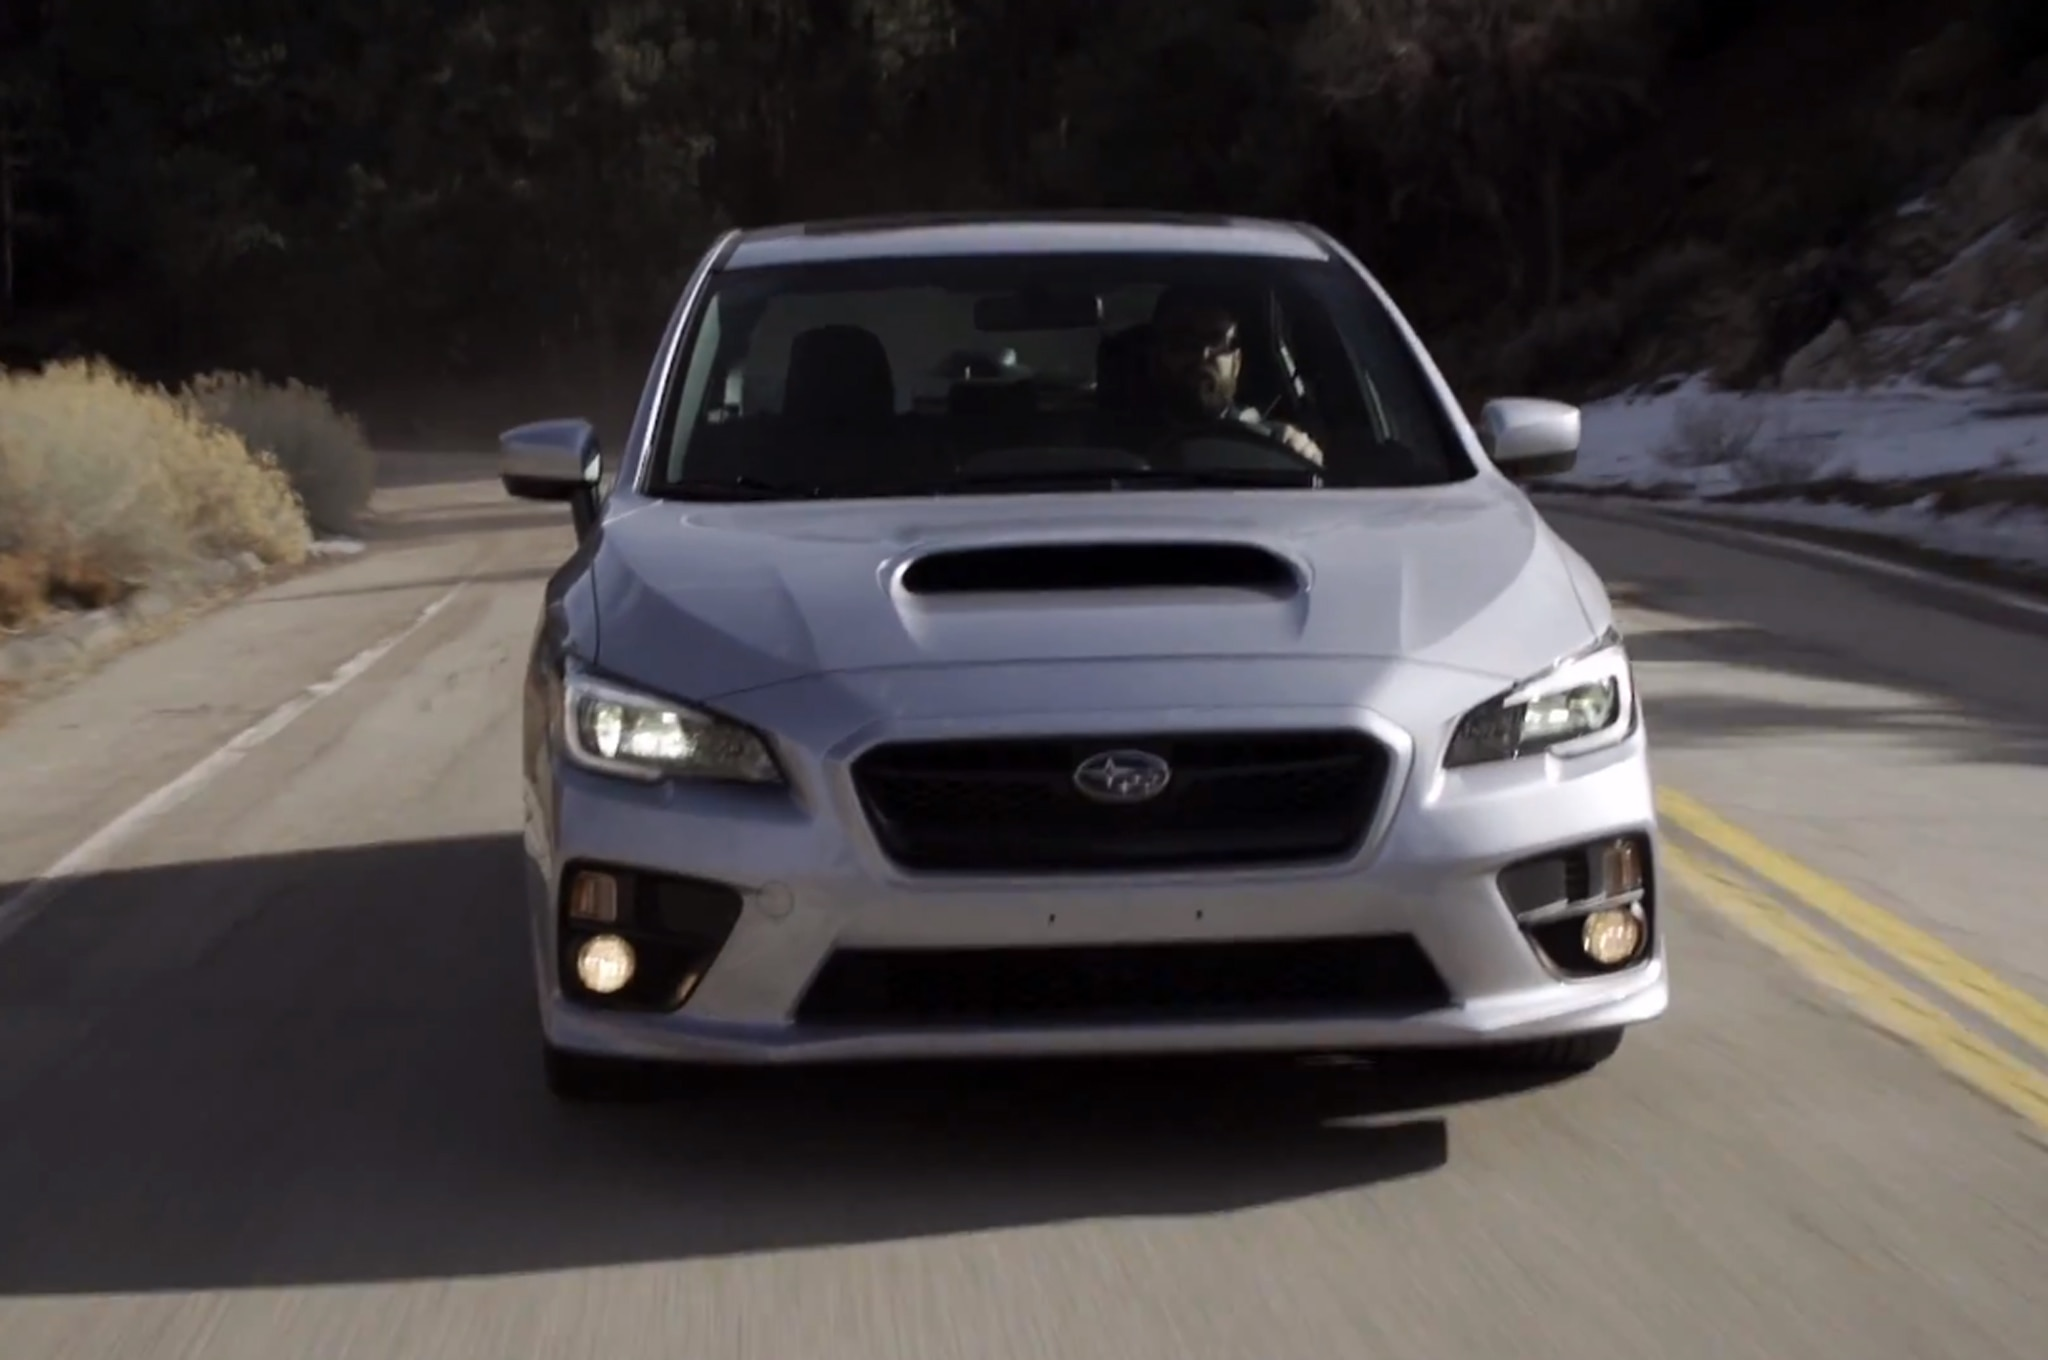 Feature Flick 2015 Subaru WRX Takes 2014 Ford Focus ST